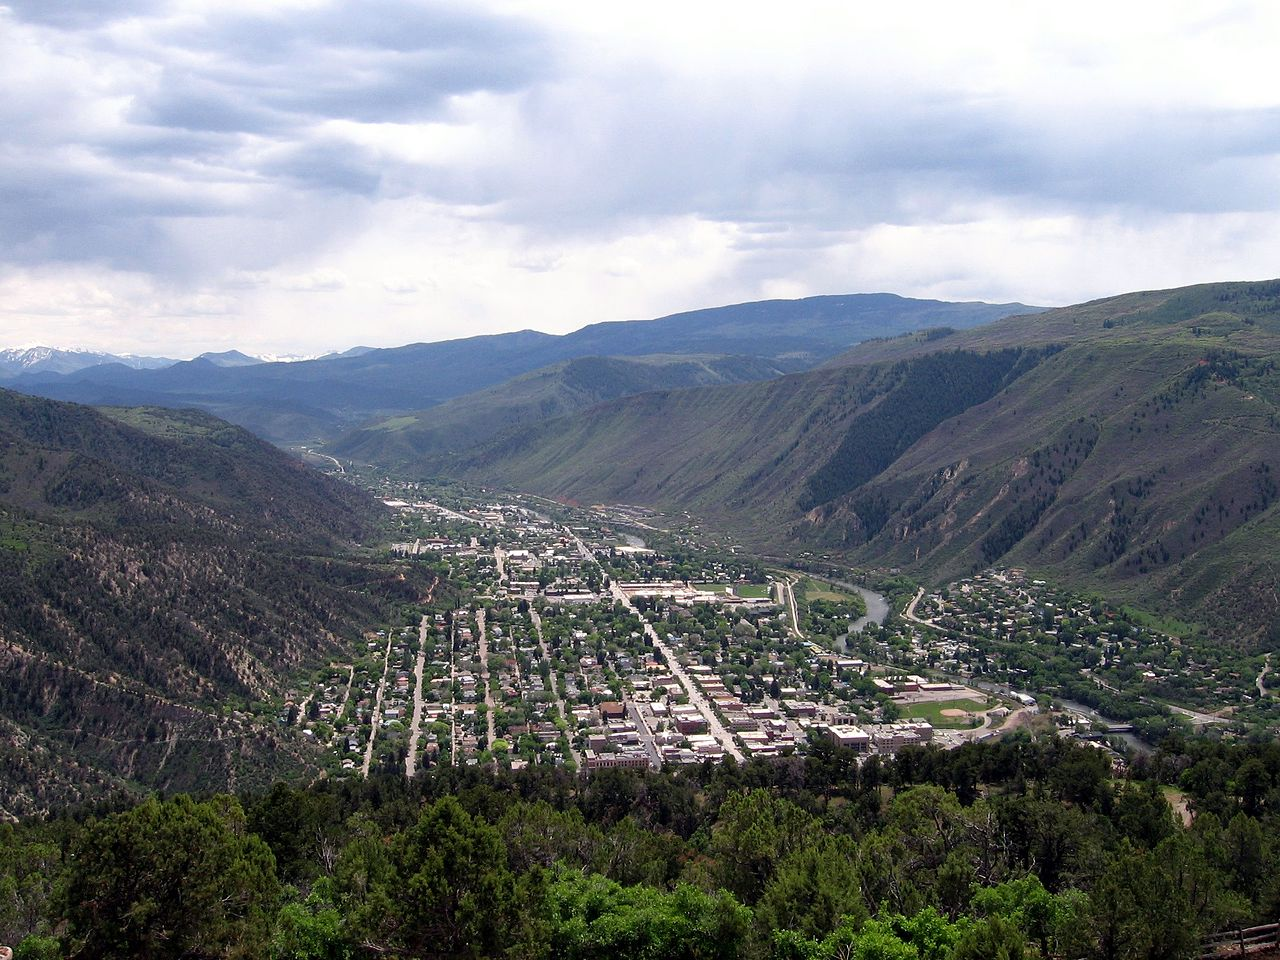 Glenwood Springs Elevation : Best mountain towns in colorado